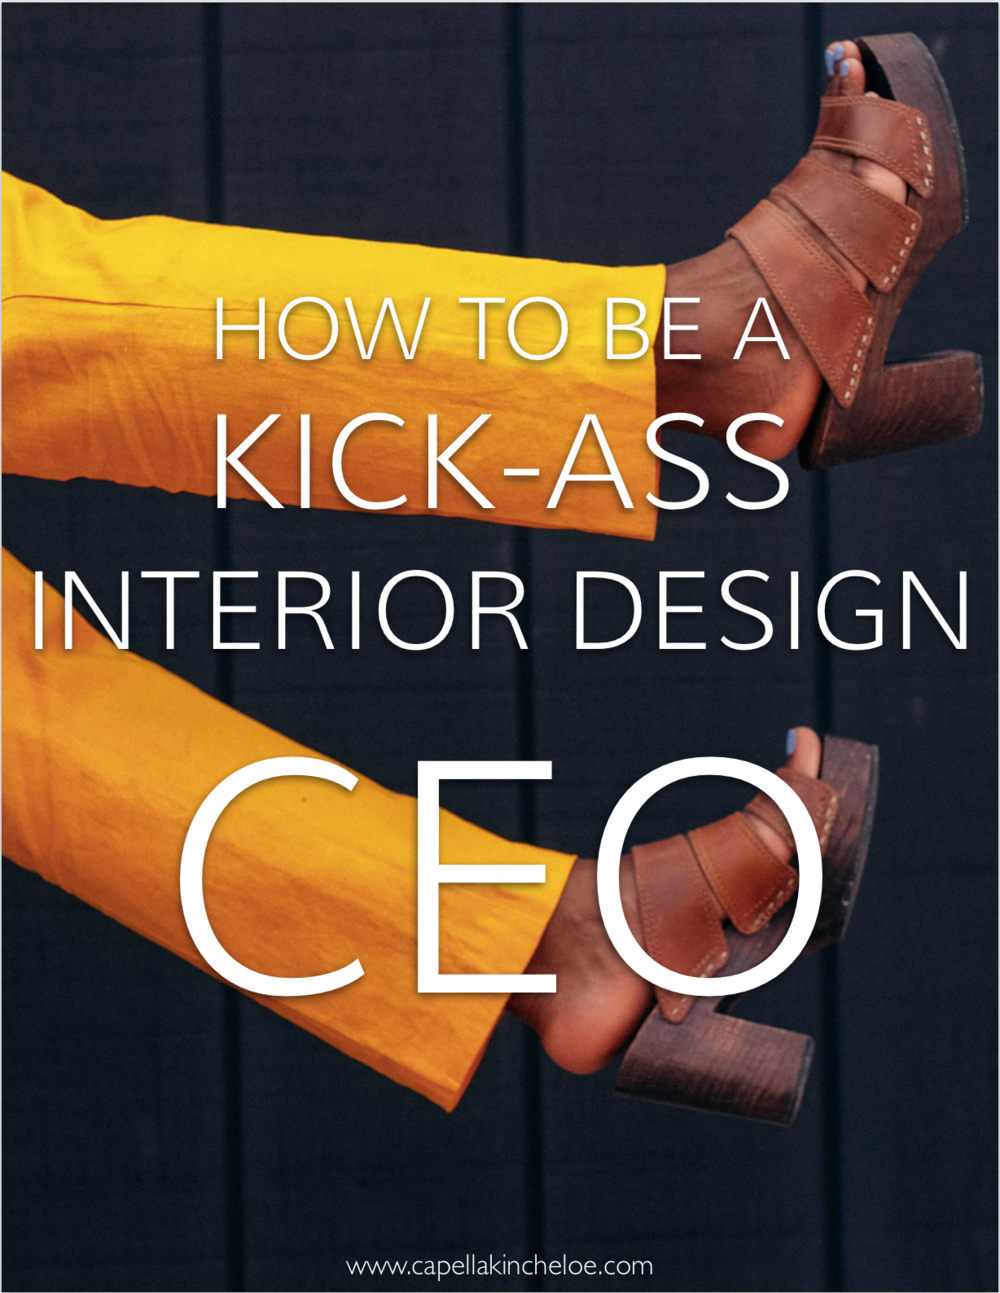 Running an interior design business?  Then you're the CEO!  Learn how to be the best one possible #interiordesignbusiness #cktradesecrets #interiordesignceo